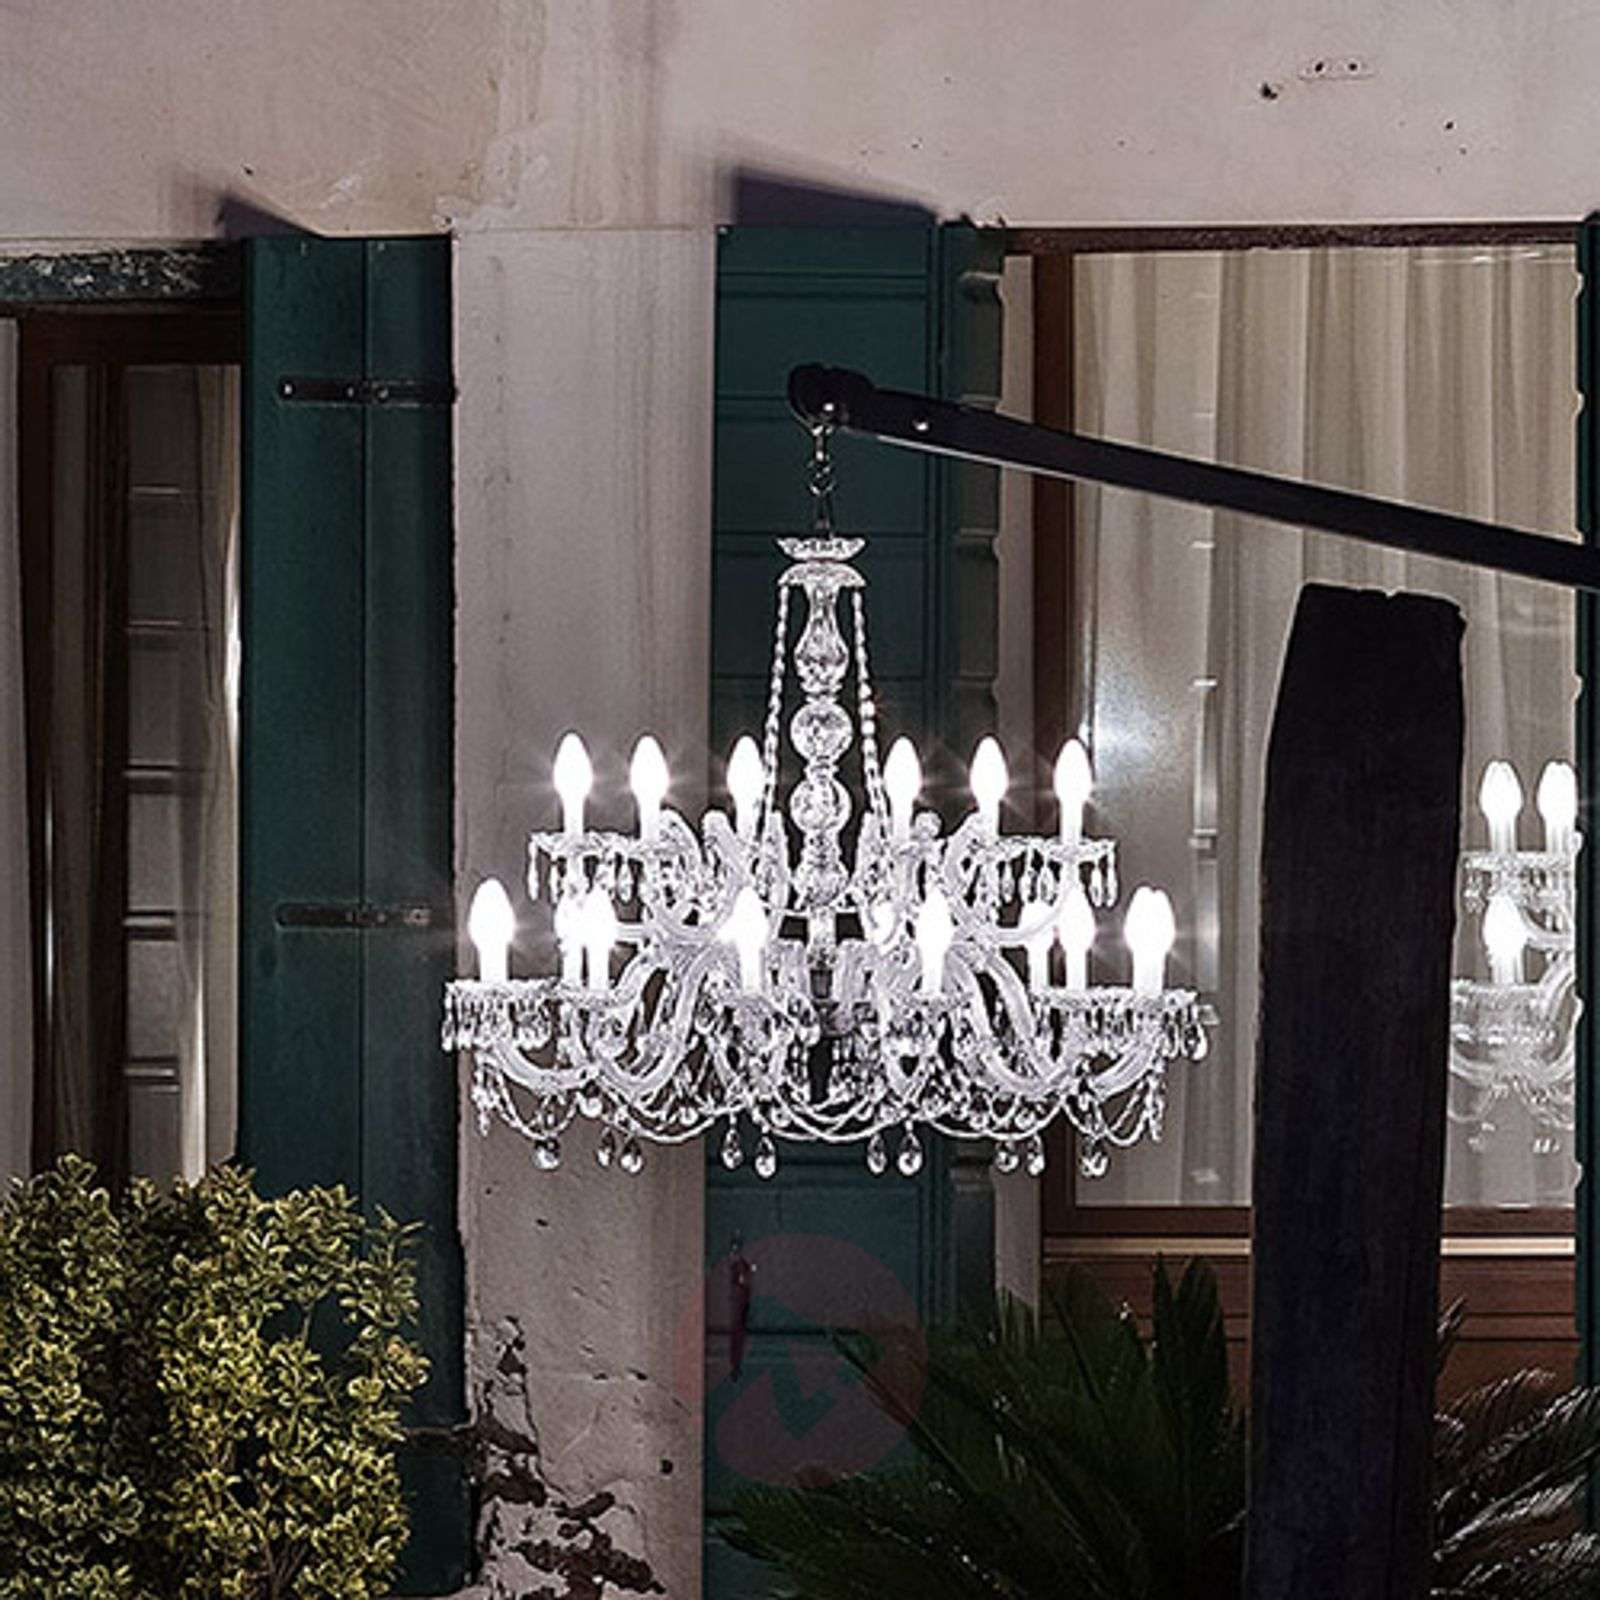 Drylight s18 18 bulb outdoor led chandelier lights drylight s18 18 bulb outdoor led chandelier 6517244 01 aloadofball Gallery